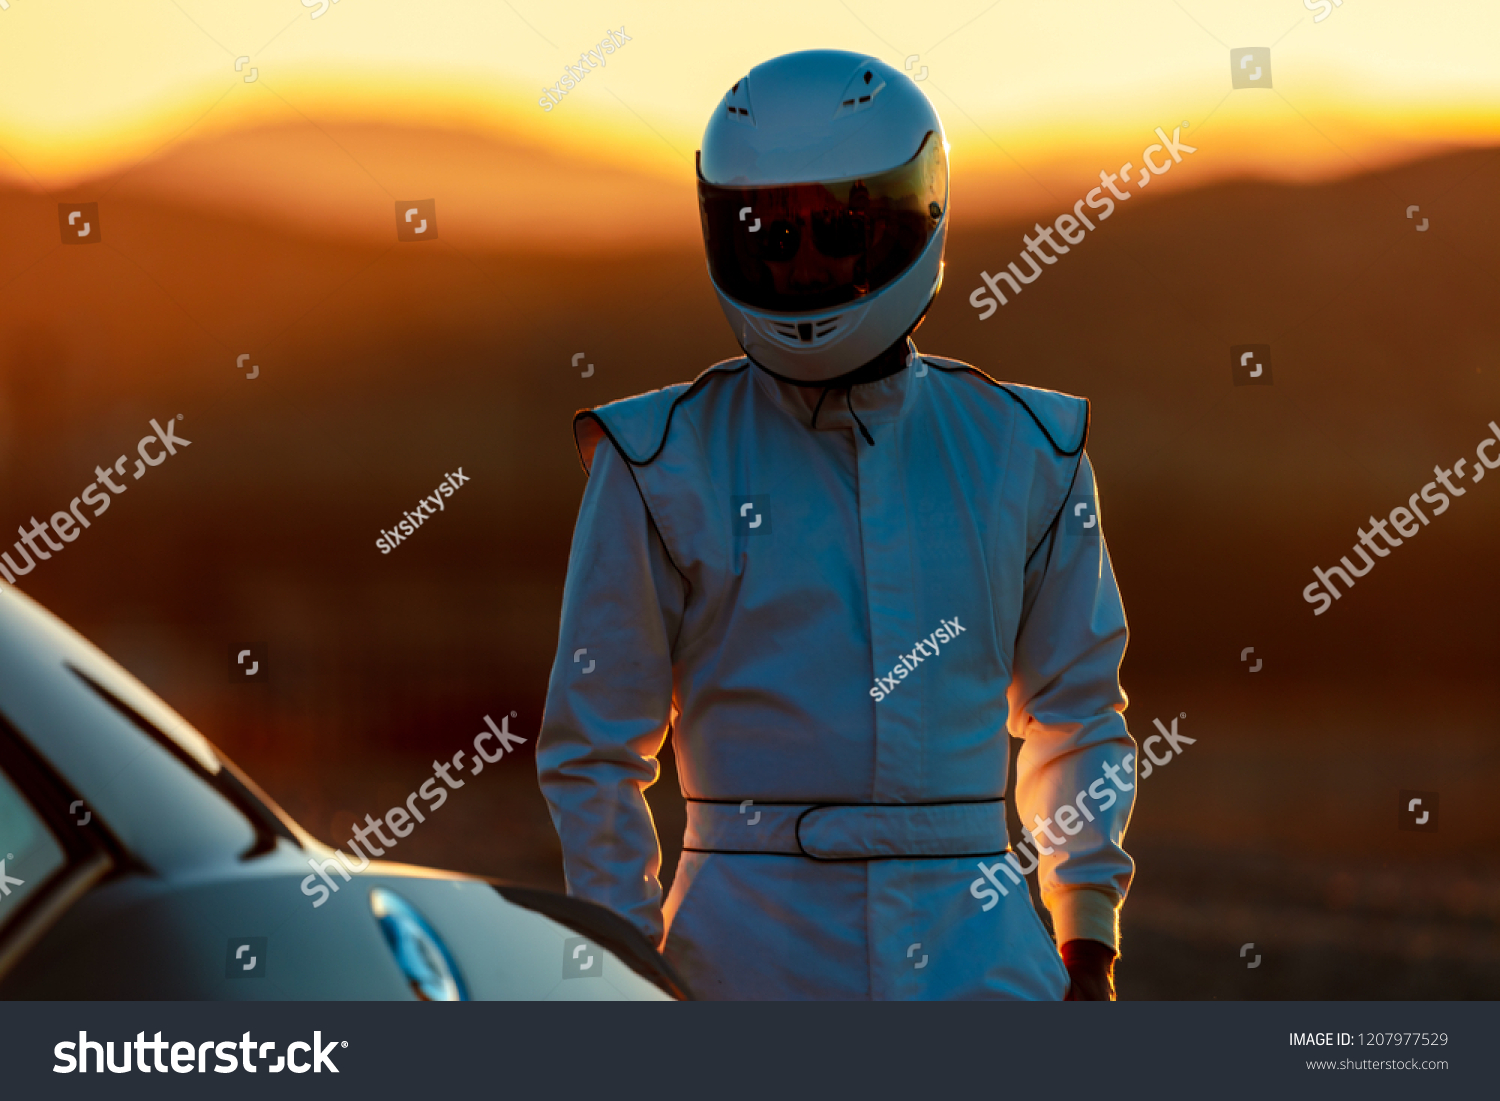 A Helmet Wearing Race Car Driver In The Early Morning Sun Looking At His Car Before Starting #1207977529